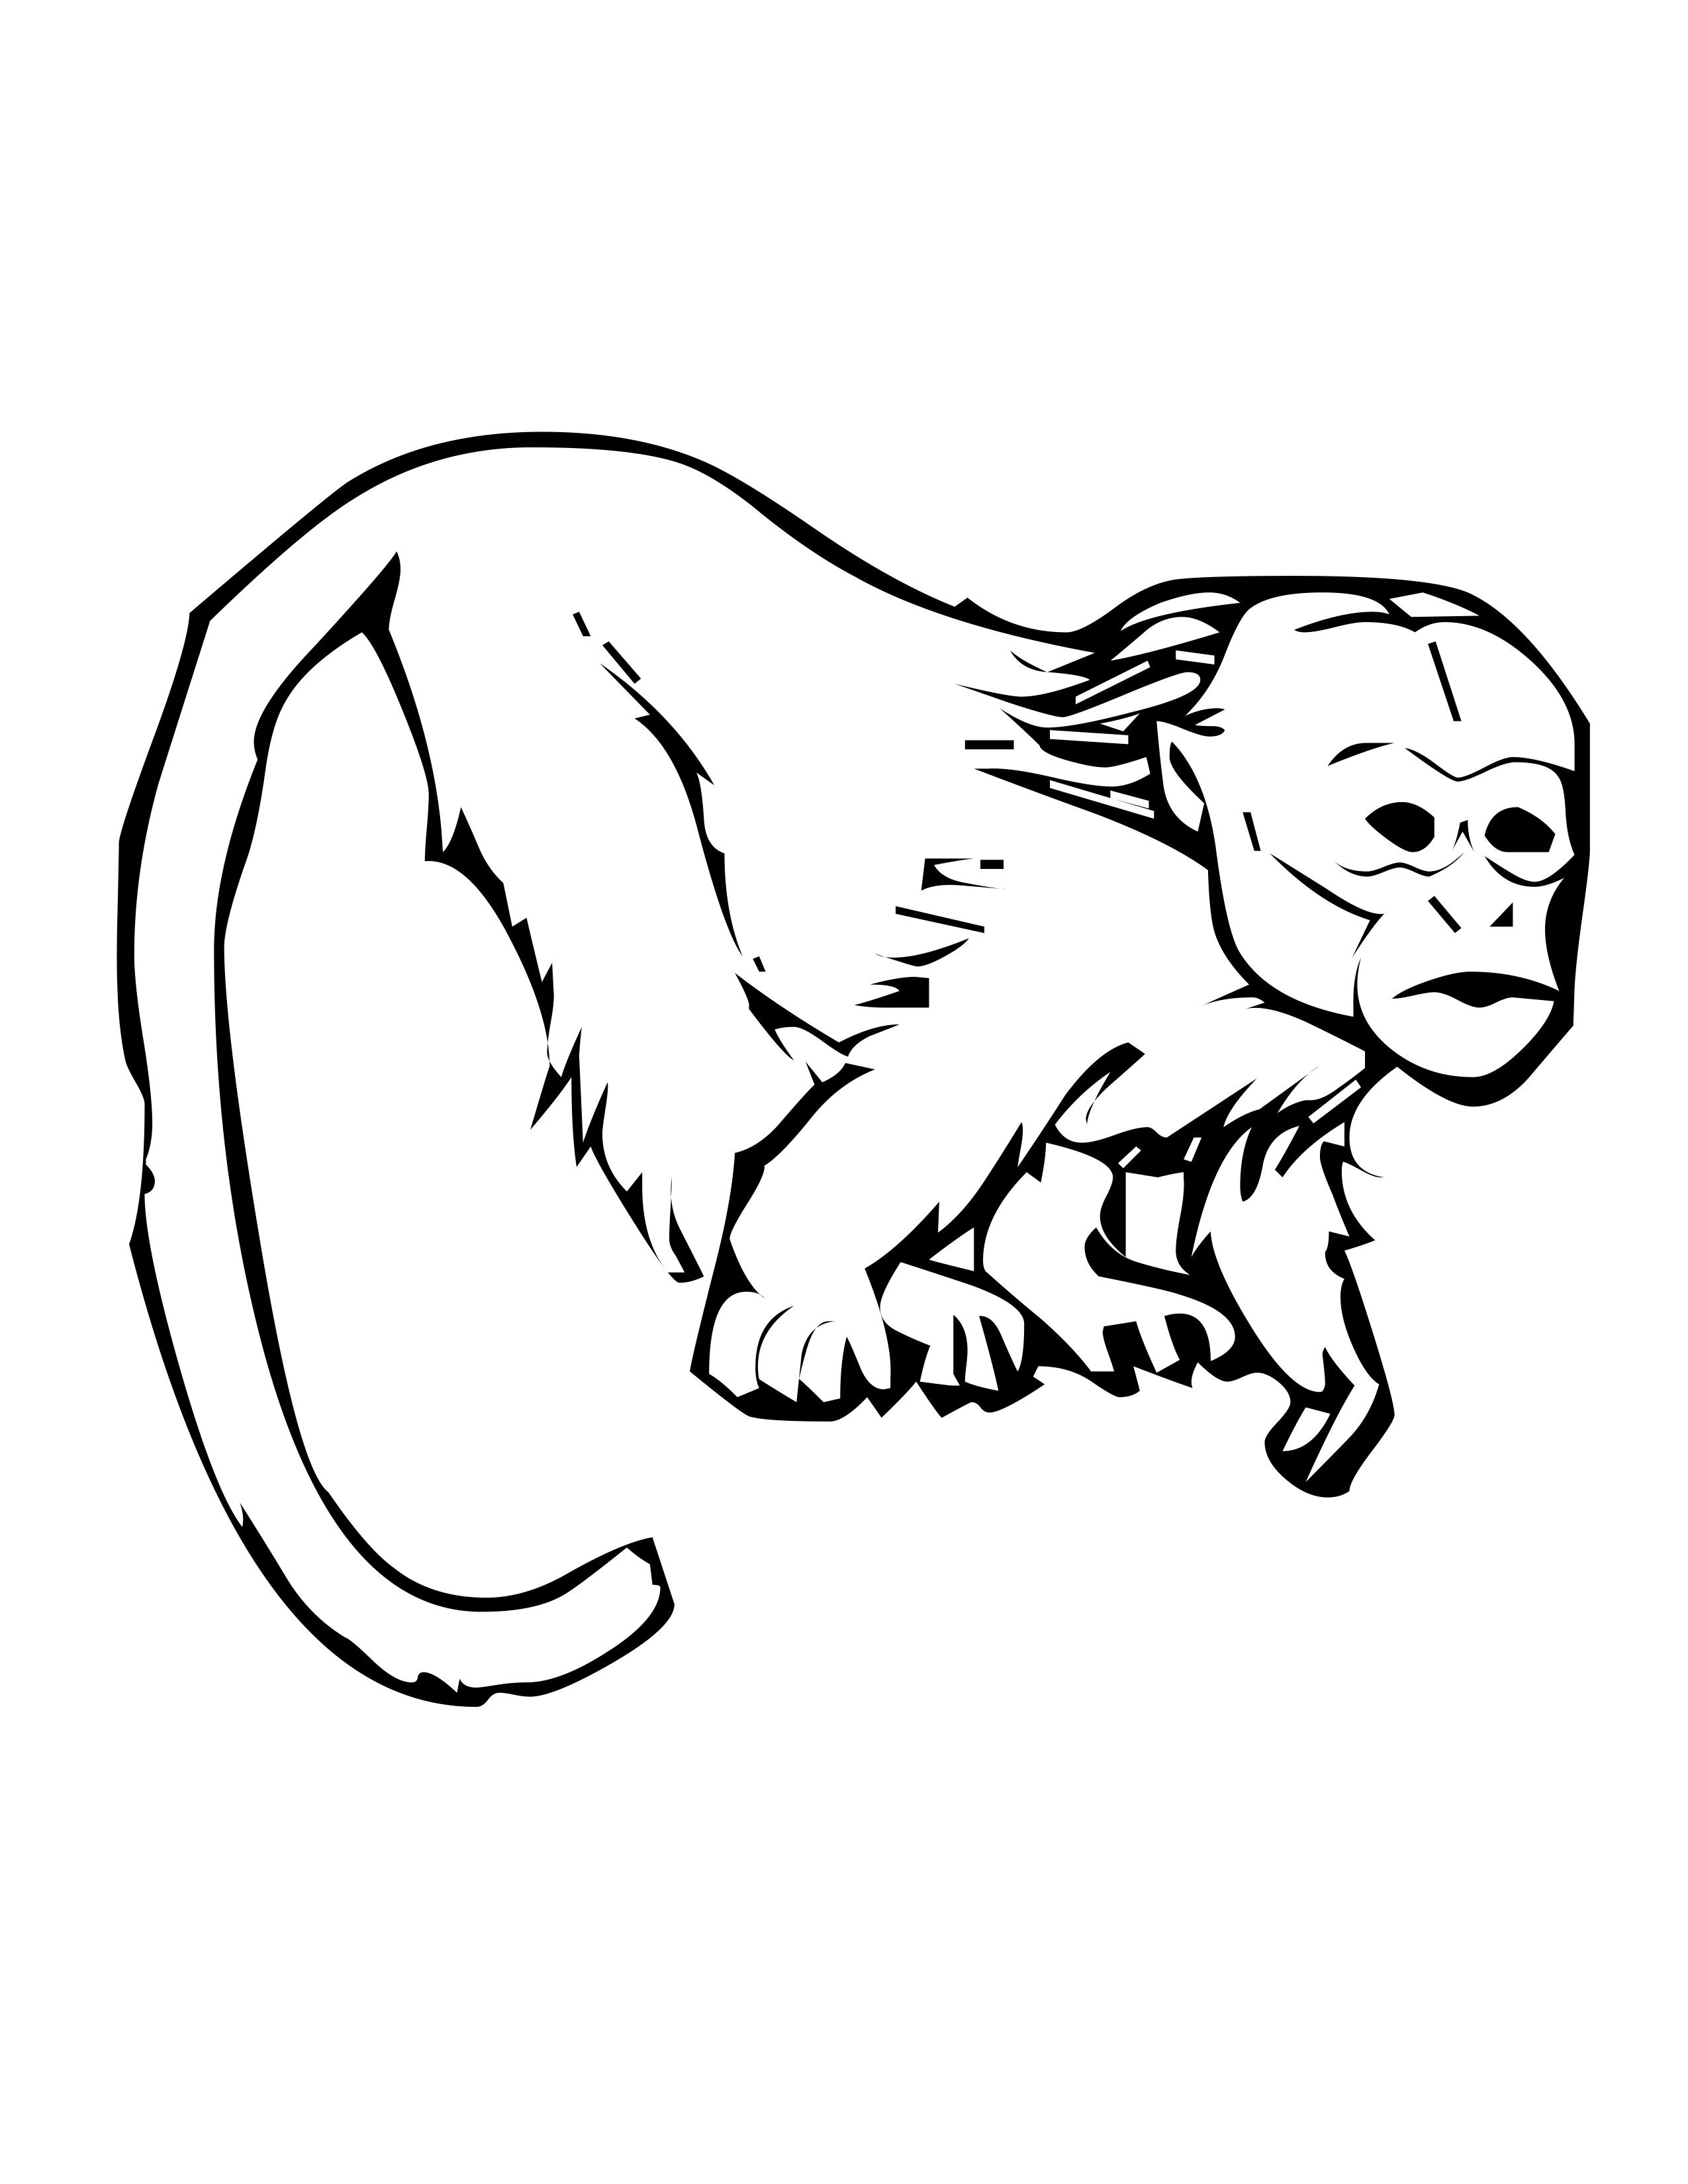 emperor tamarin coloring page tamarind monkey colouring